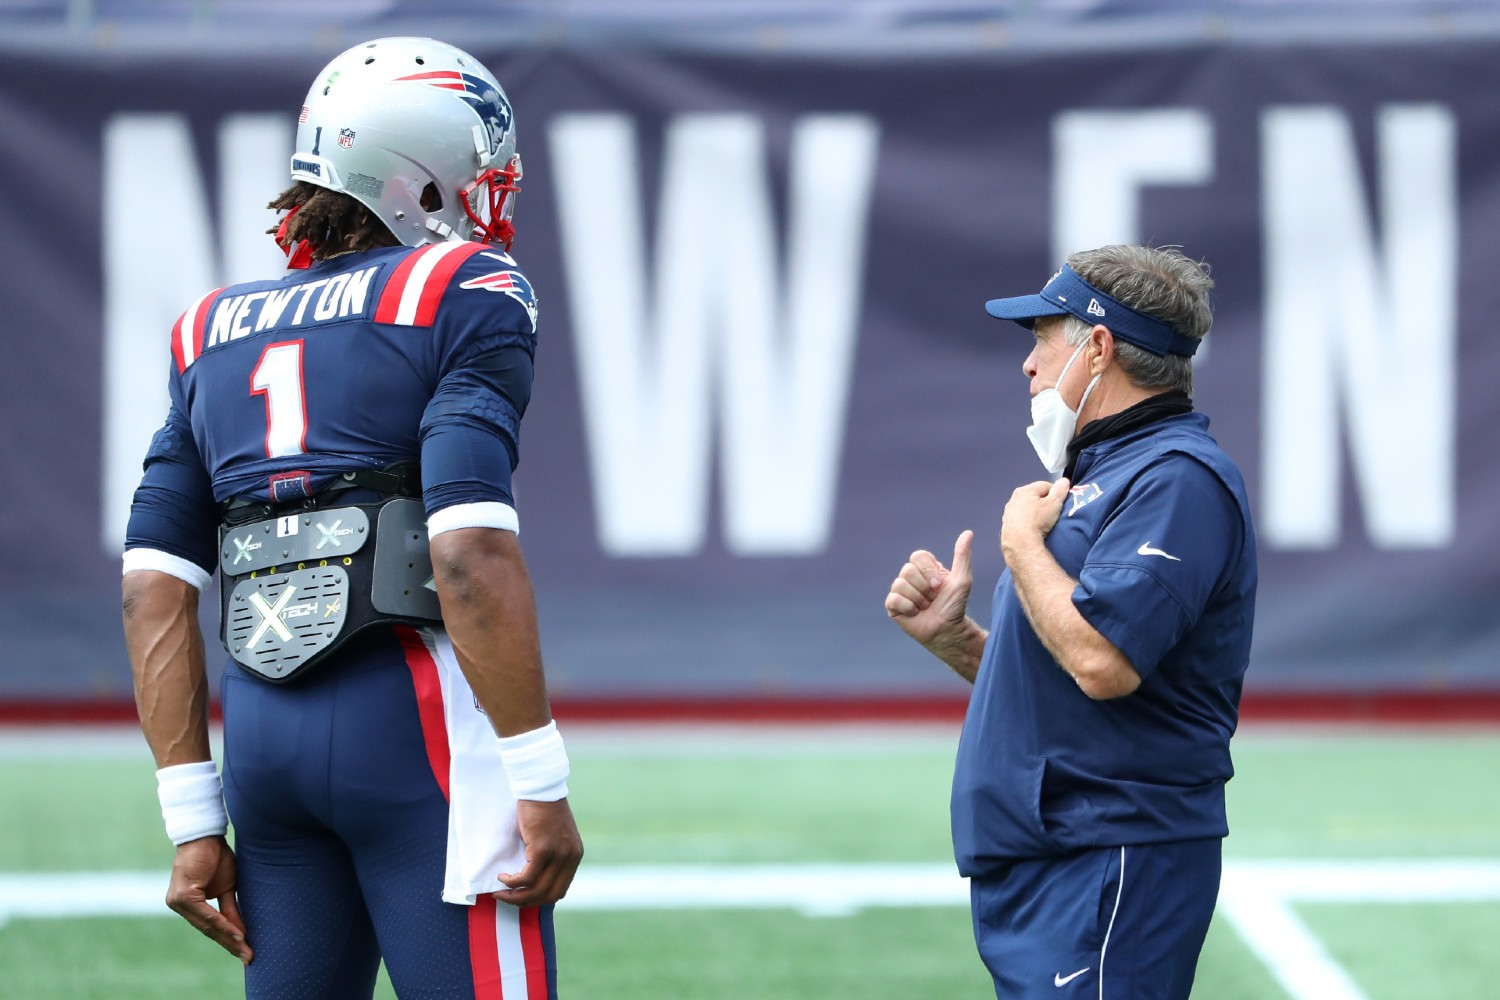 Newton not expected to return to Patriots